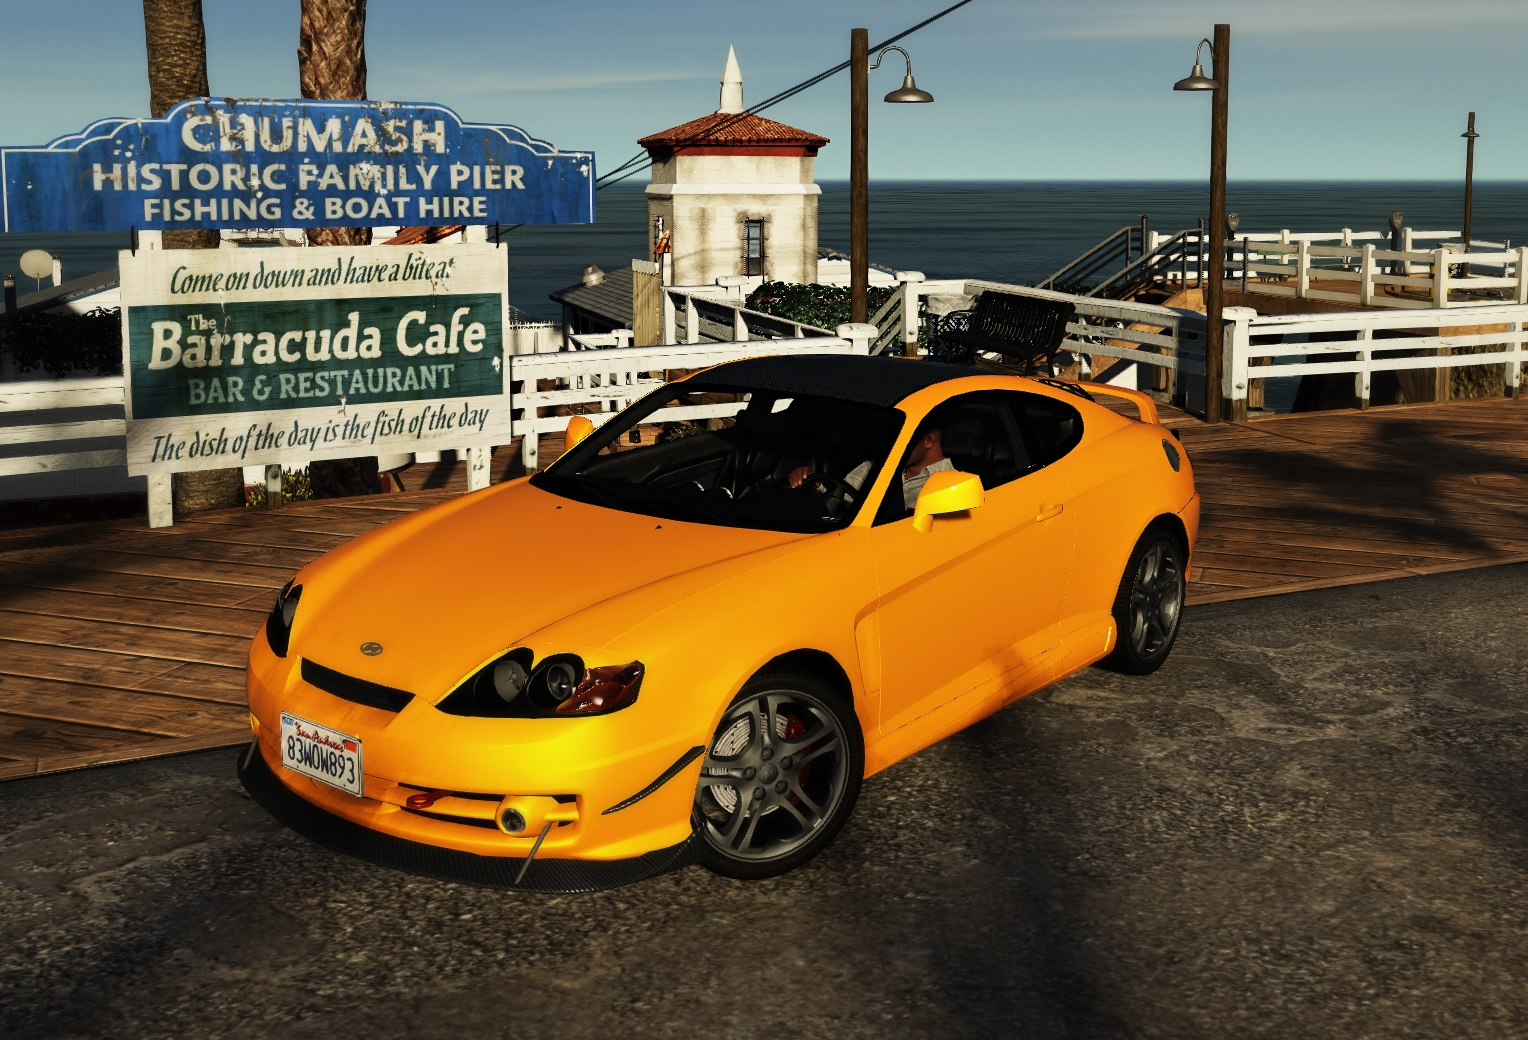 hyundai tiburon coupe v6 add on tuning template old gta5 mods com hyundai tiburon coupe v6 add on